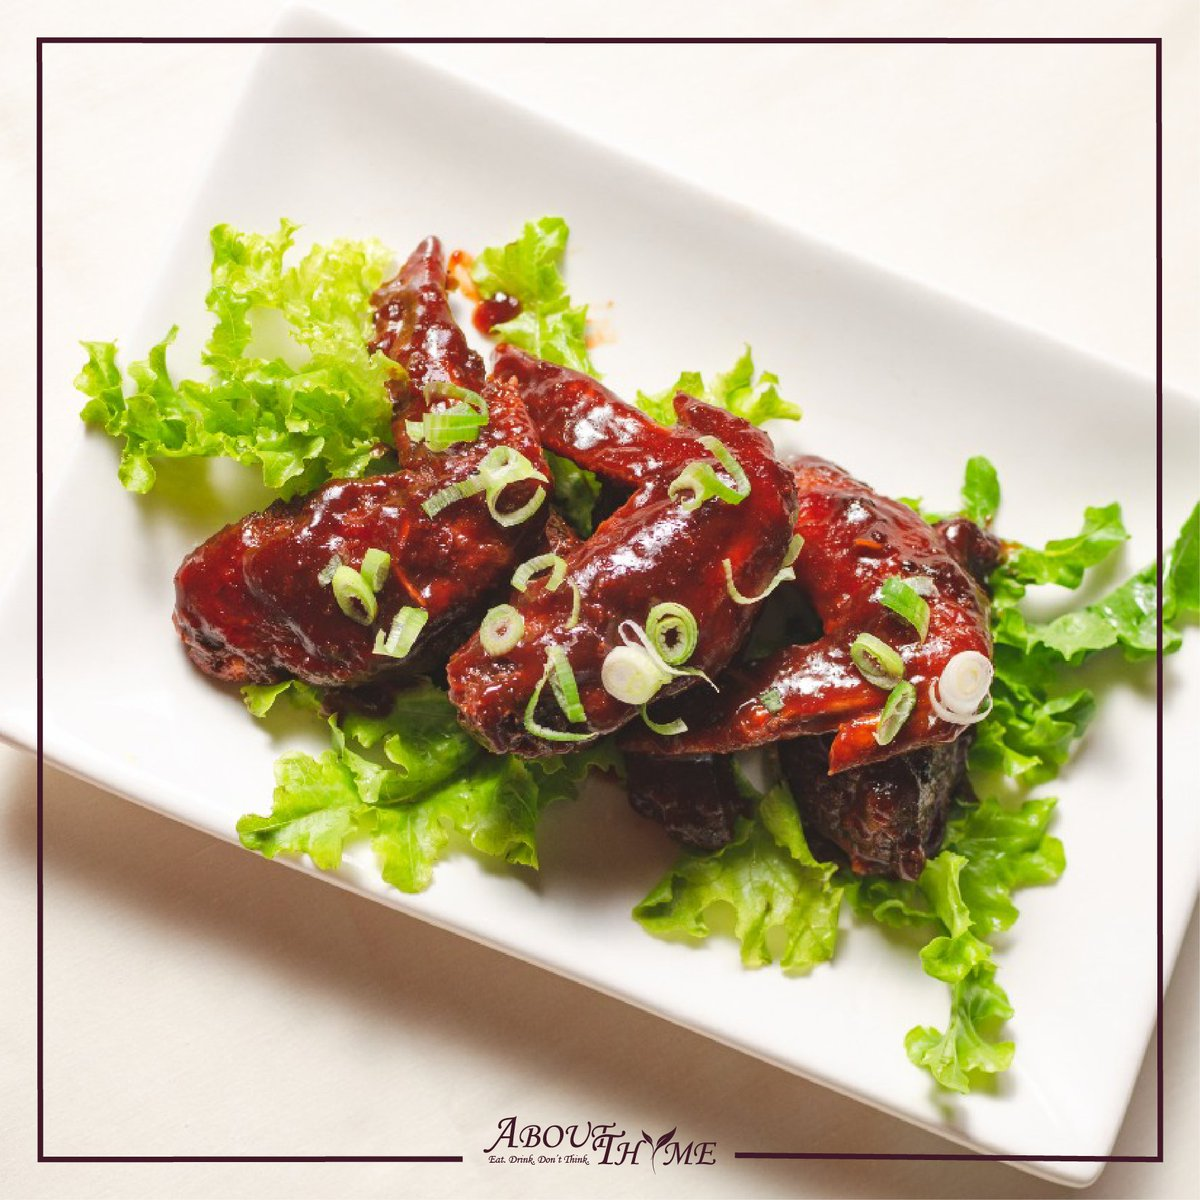 '' left-wing, chicken wing, it don't make no difference to me '' Woody Guthrie. Come 'wing it' with us at http://www.about-thyme.com  #AboutThyme #DownThyme #NairobiRestaurants #foodiesIG #takeout #foodgasm #instalike #yummyinmytummy #starters #foodgasm #foodpics #wingspic.twitter.com/80vcjhP5Sj